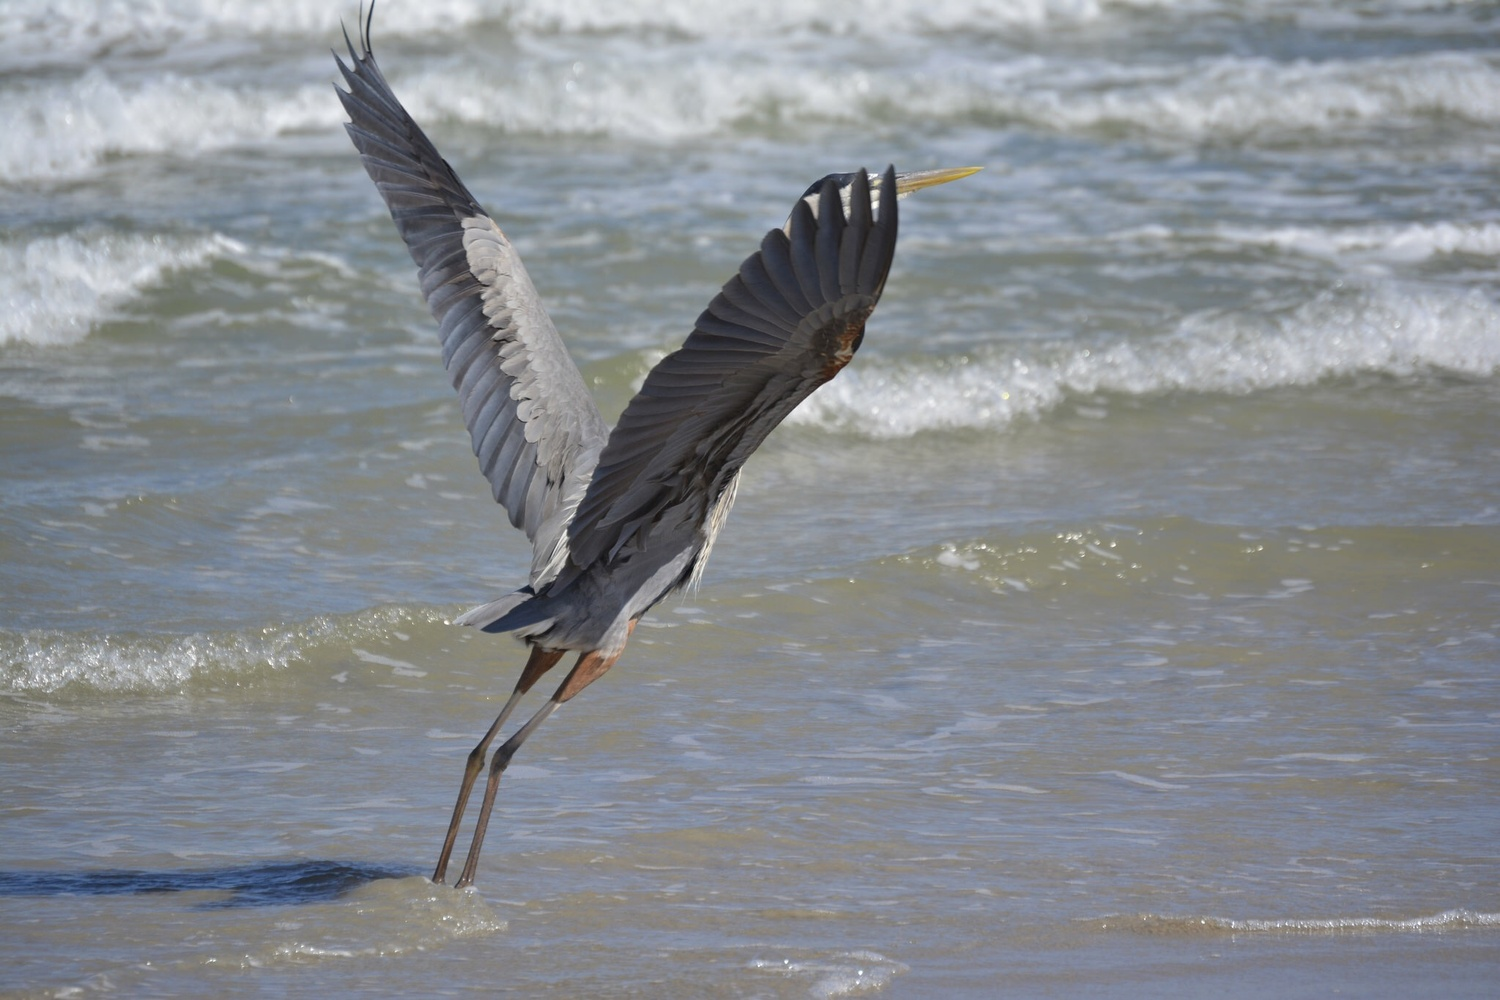 Blue Heron taking off on beach by Robert Bruton